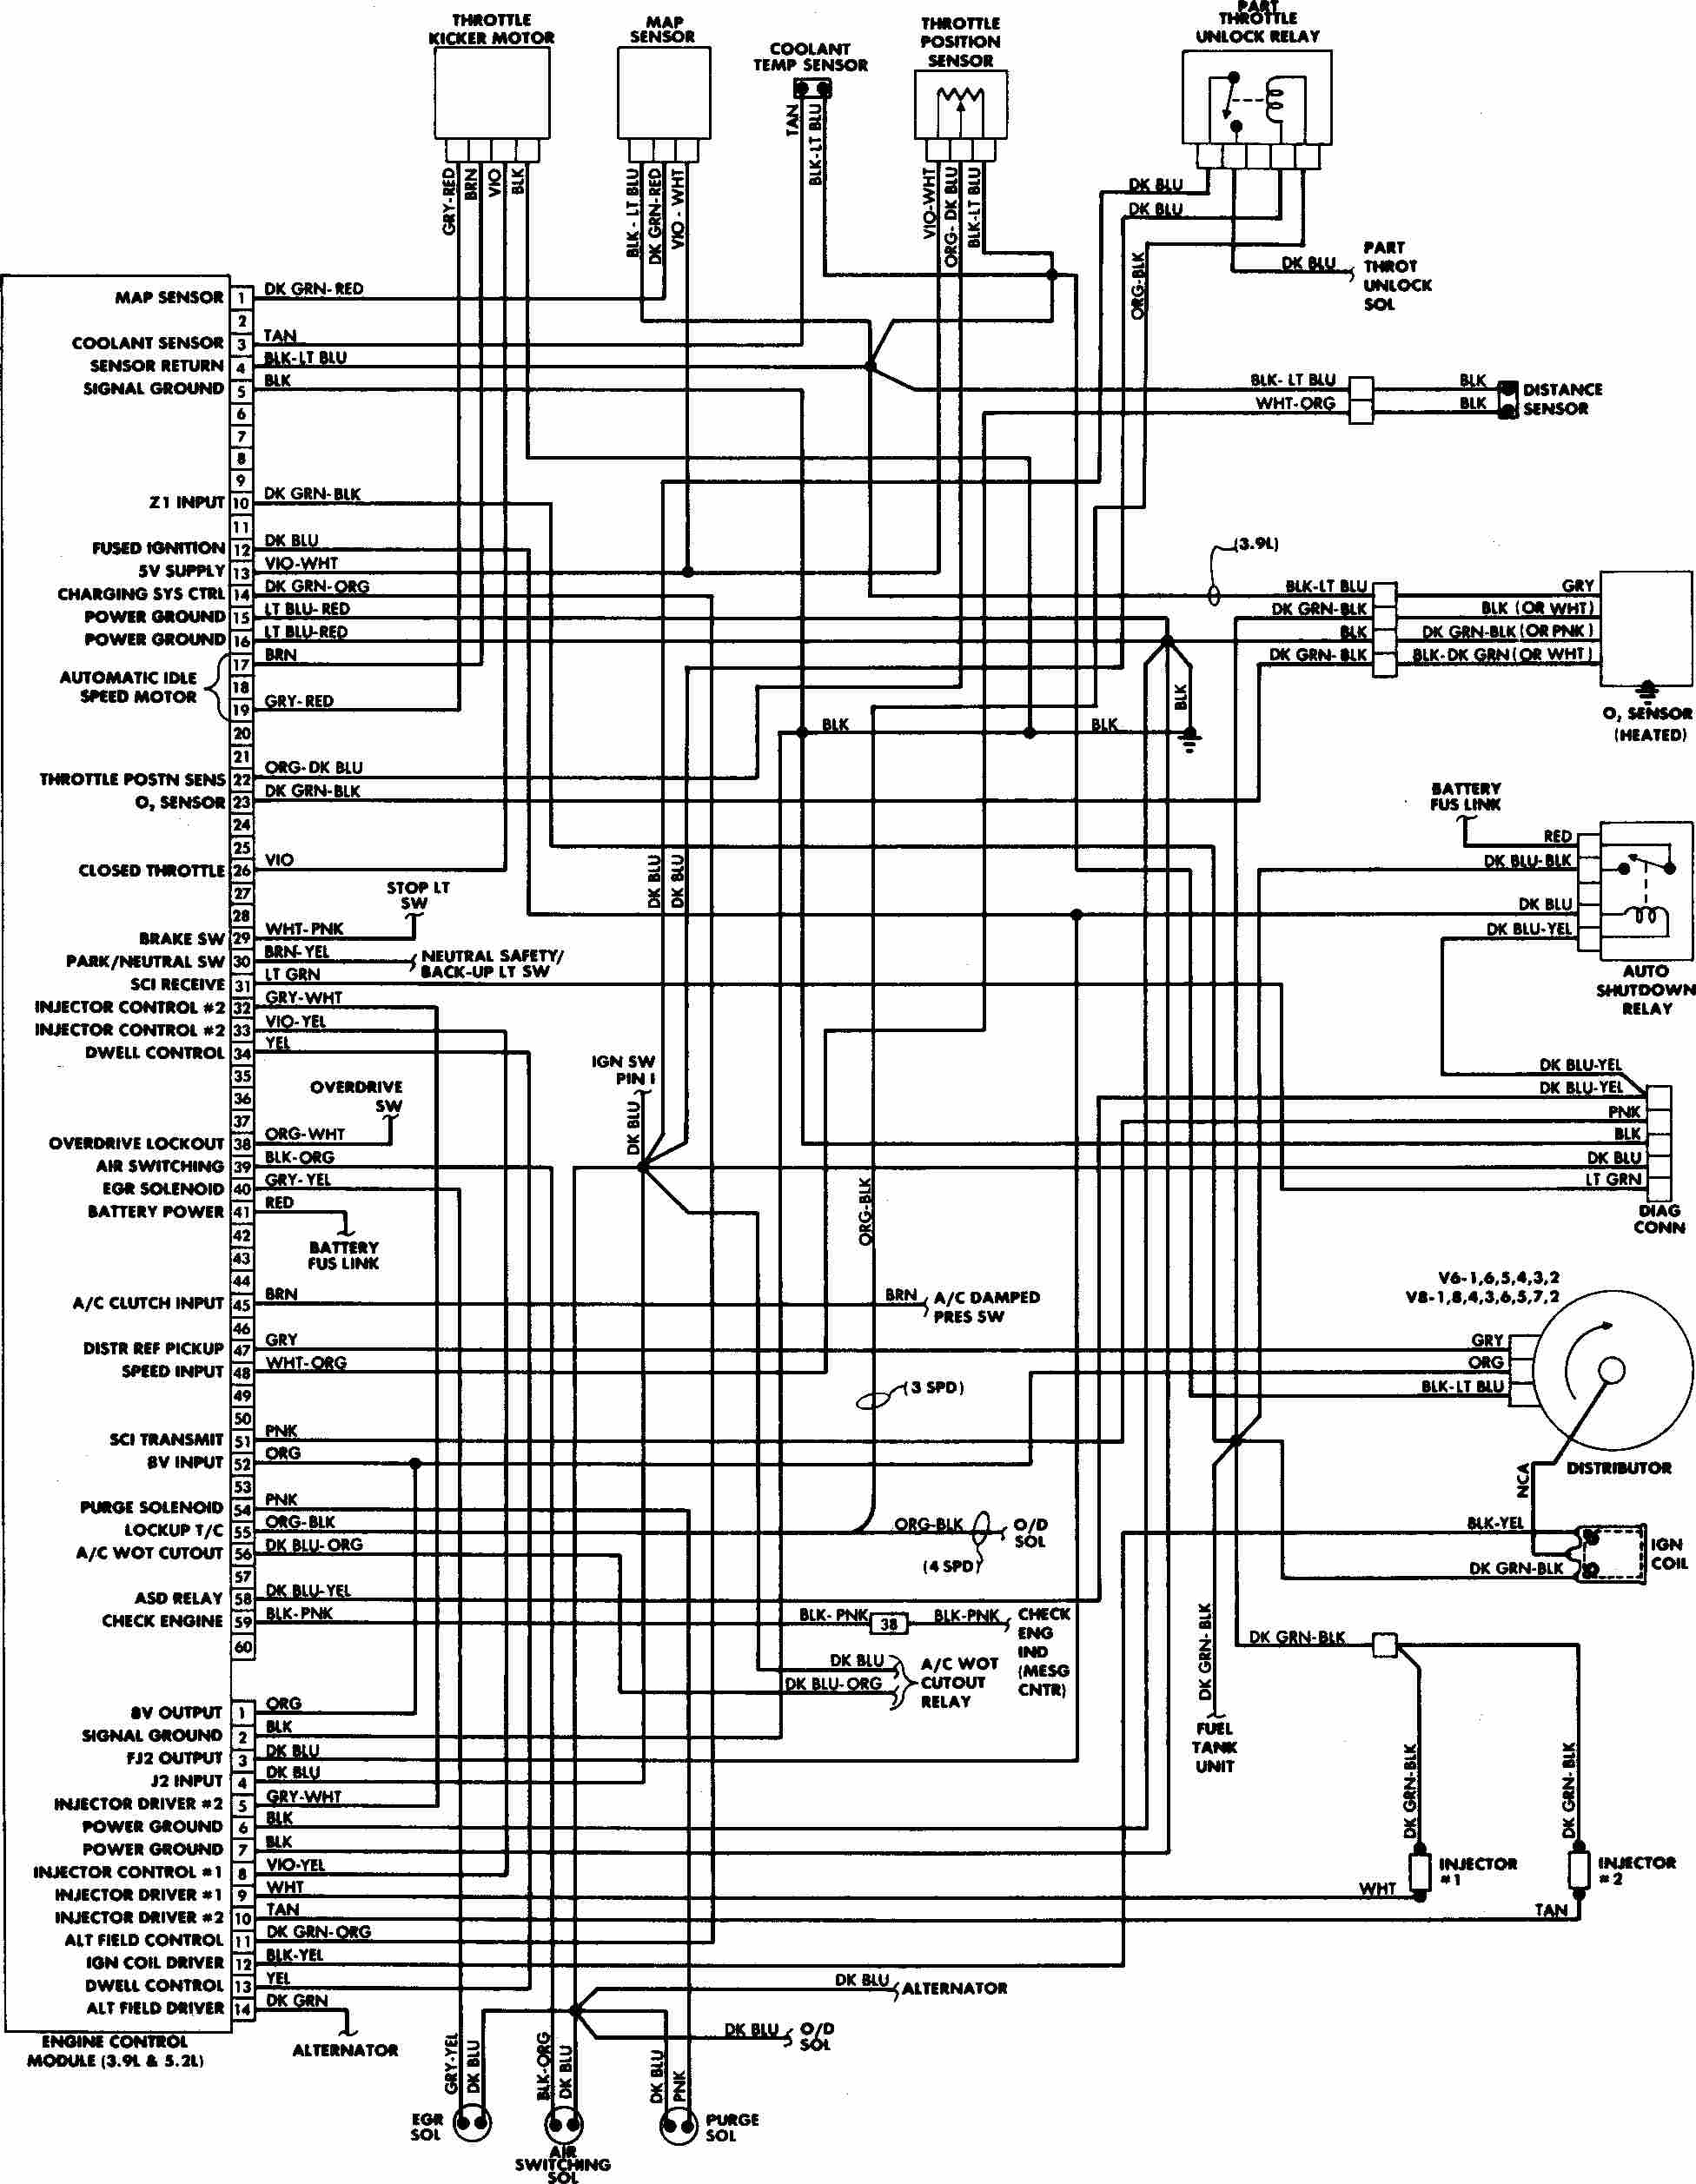 Ibanez Js Series Wiring Diagram